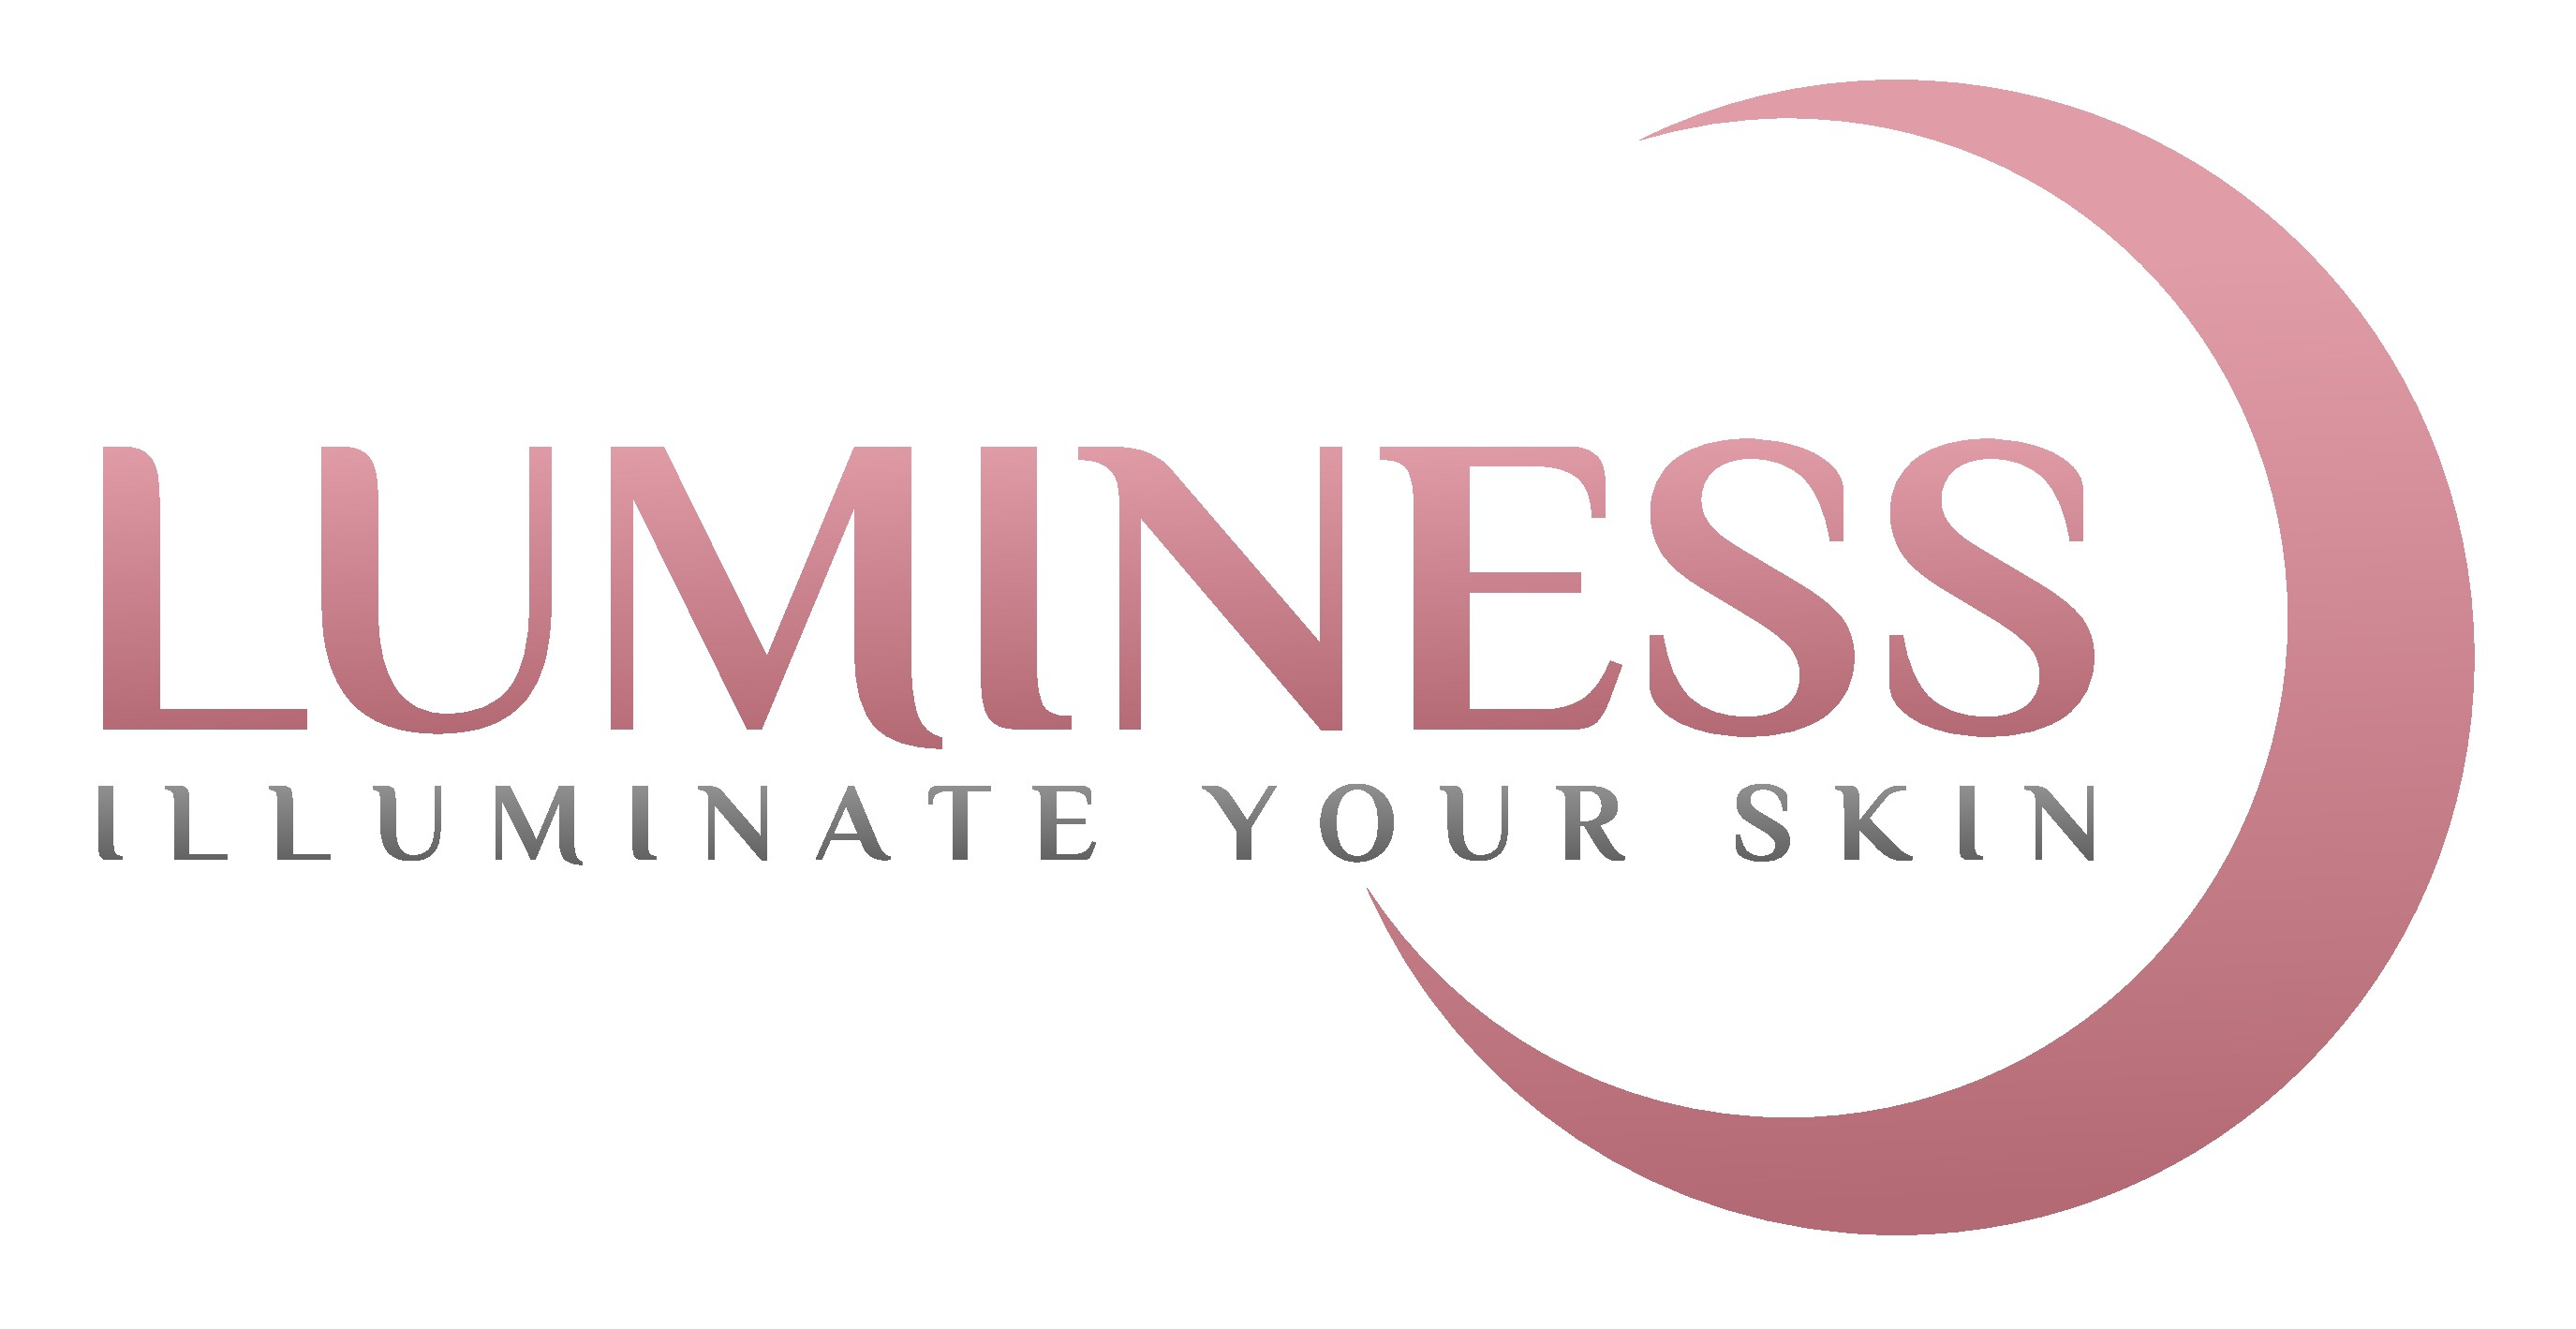 Want a sleek, classy mobile tanning logo and business card for mobile tanning in Austin